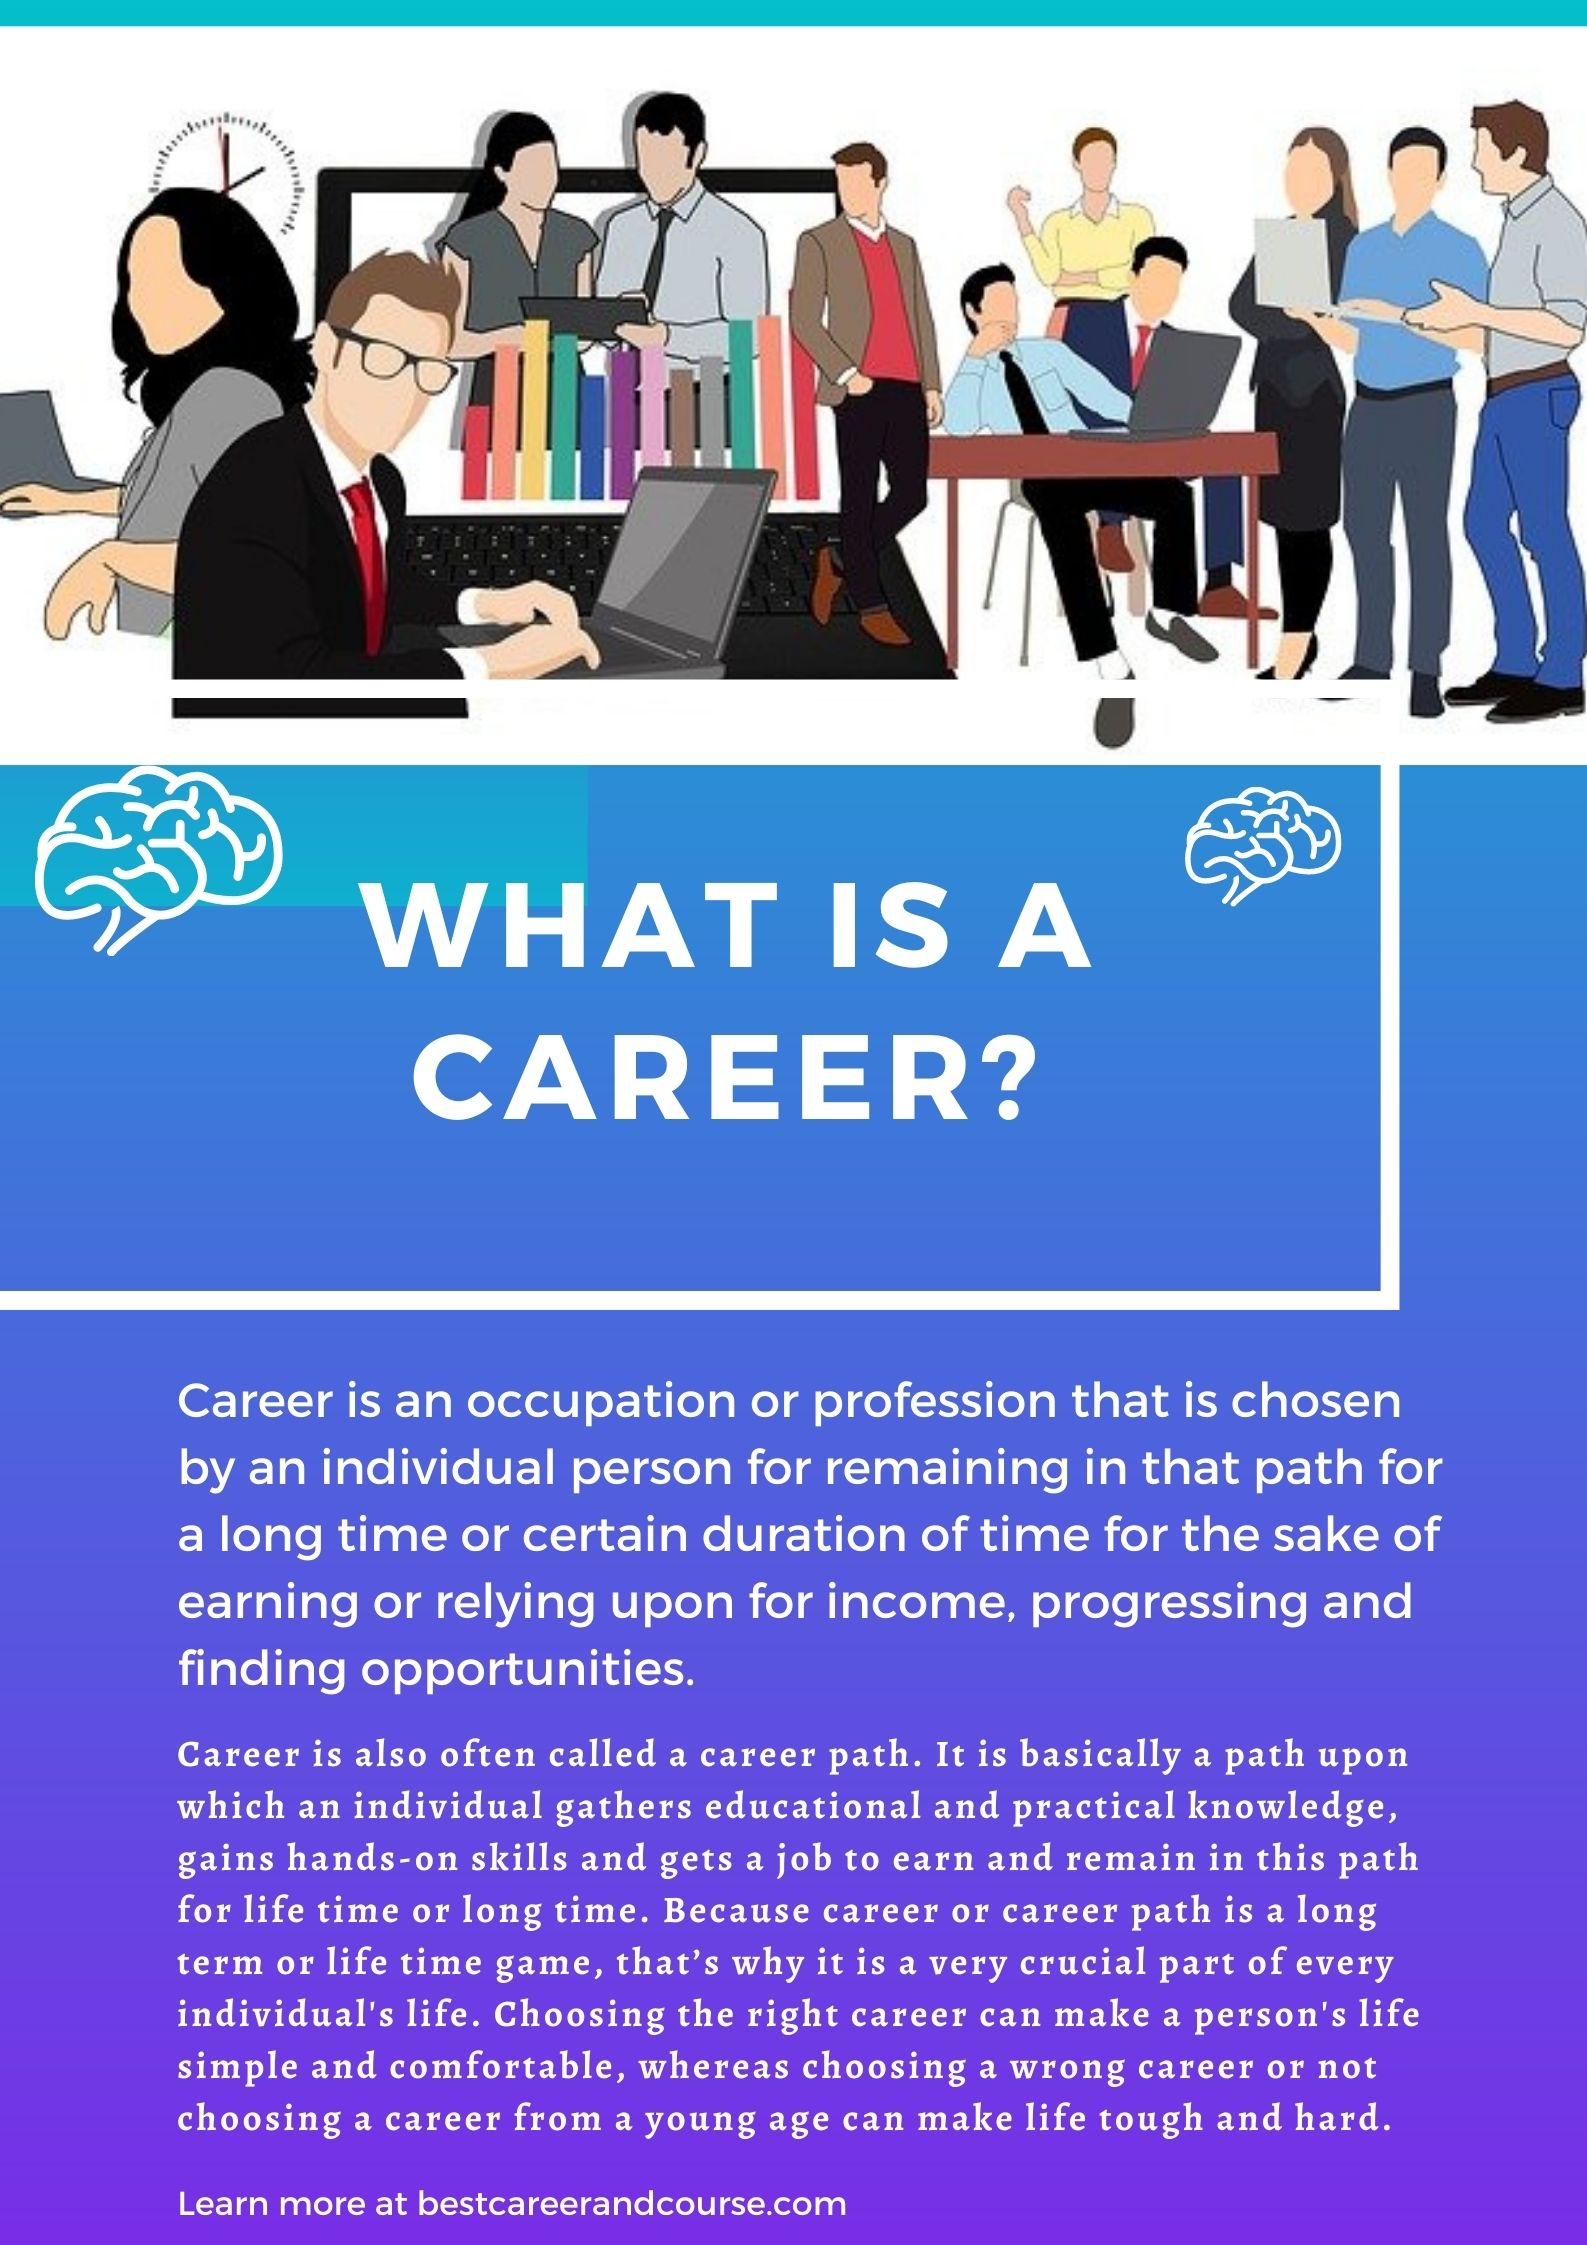 career definition or career meaning